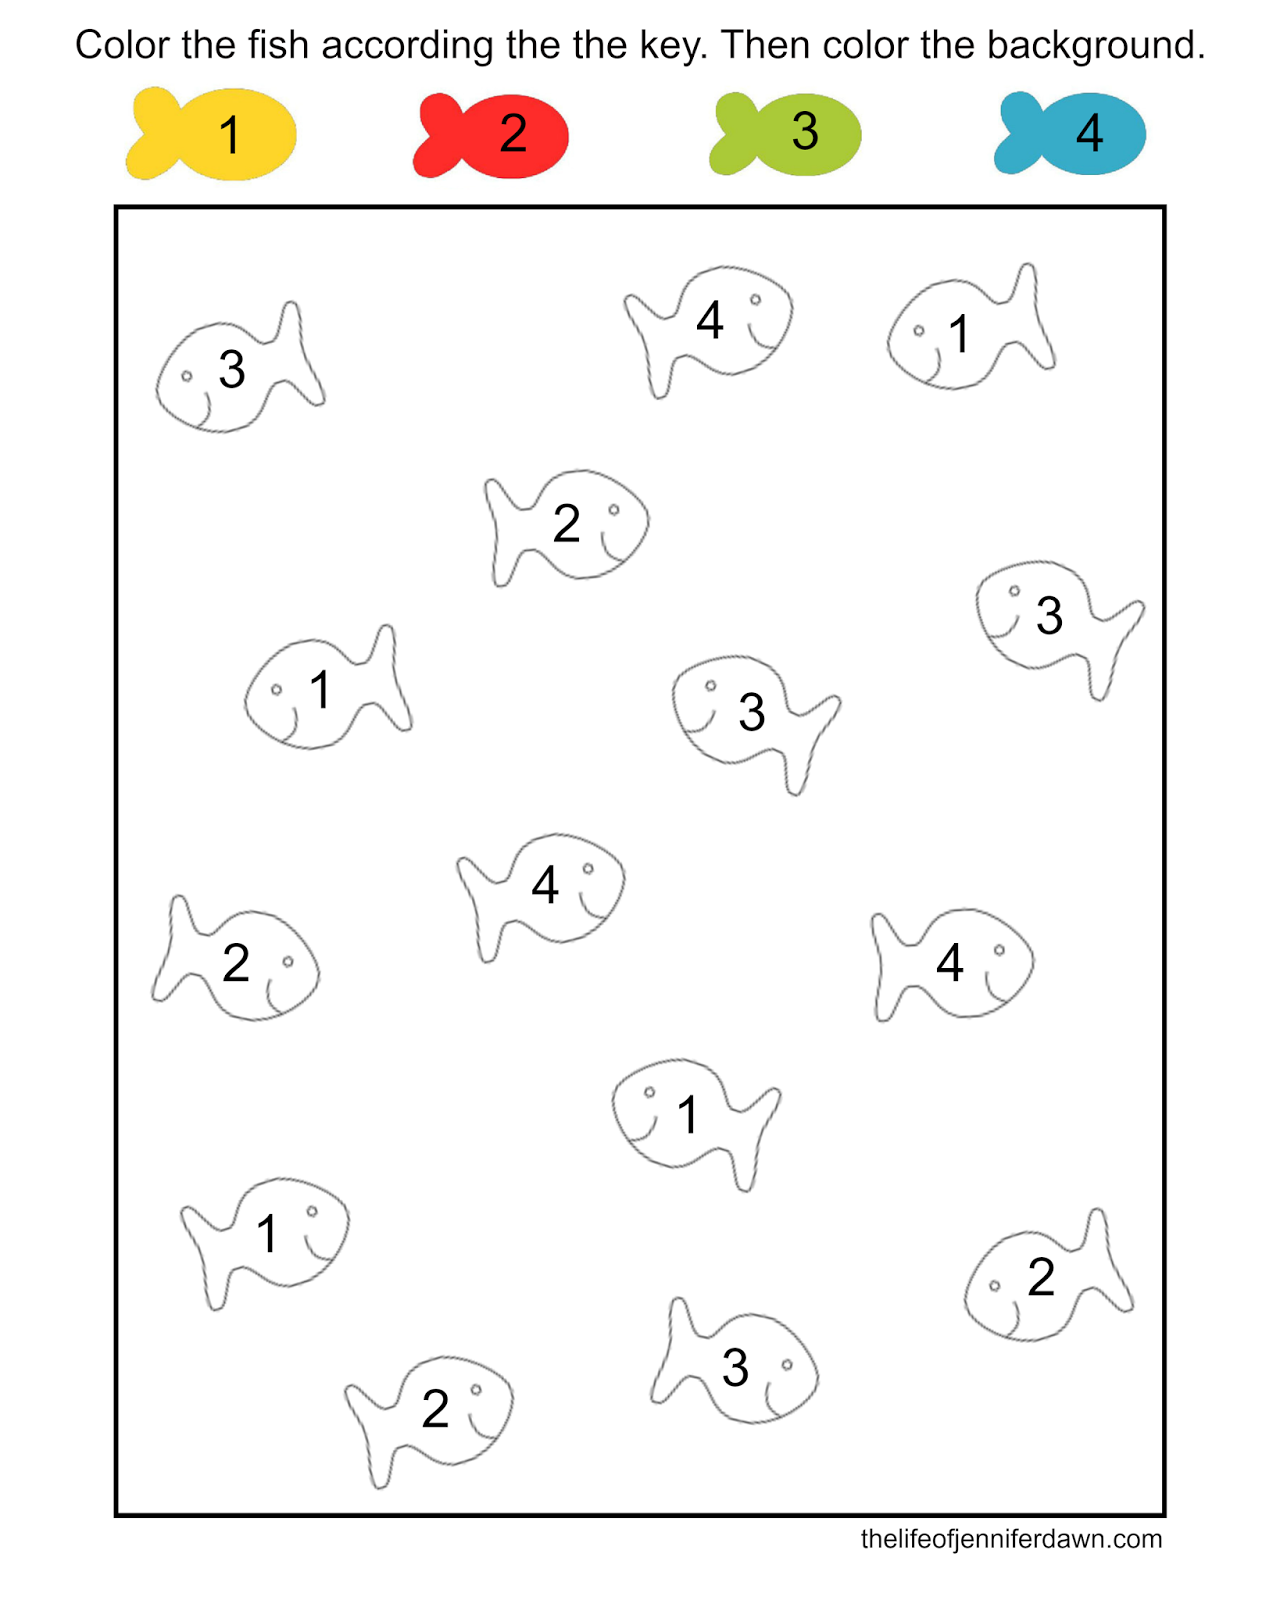 The Life of Jennifer Dawn: Printable Coloring Pages for Kids ...